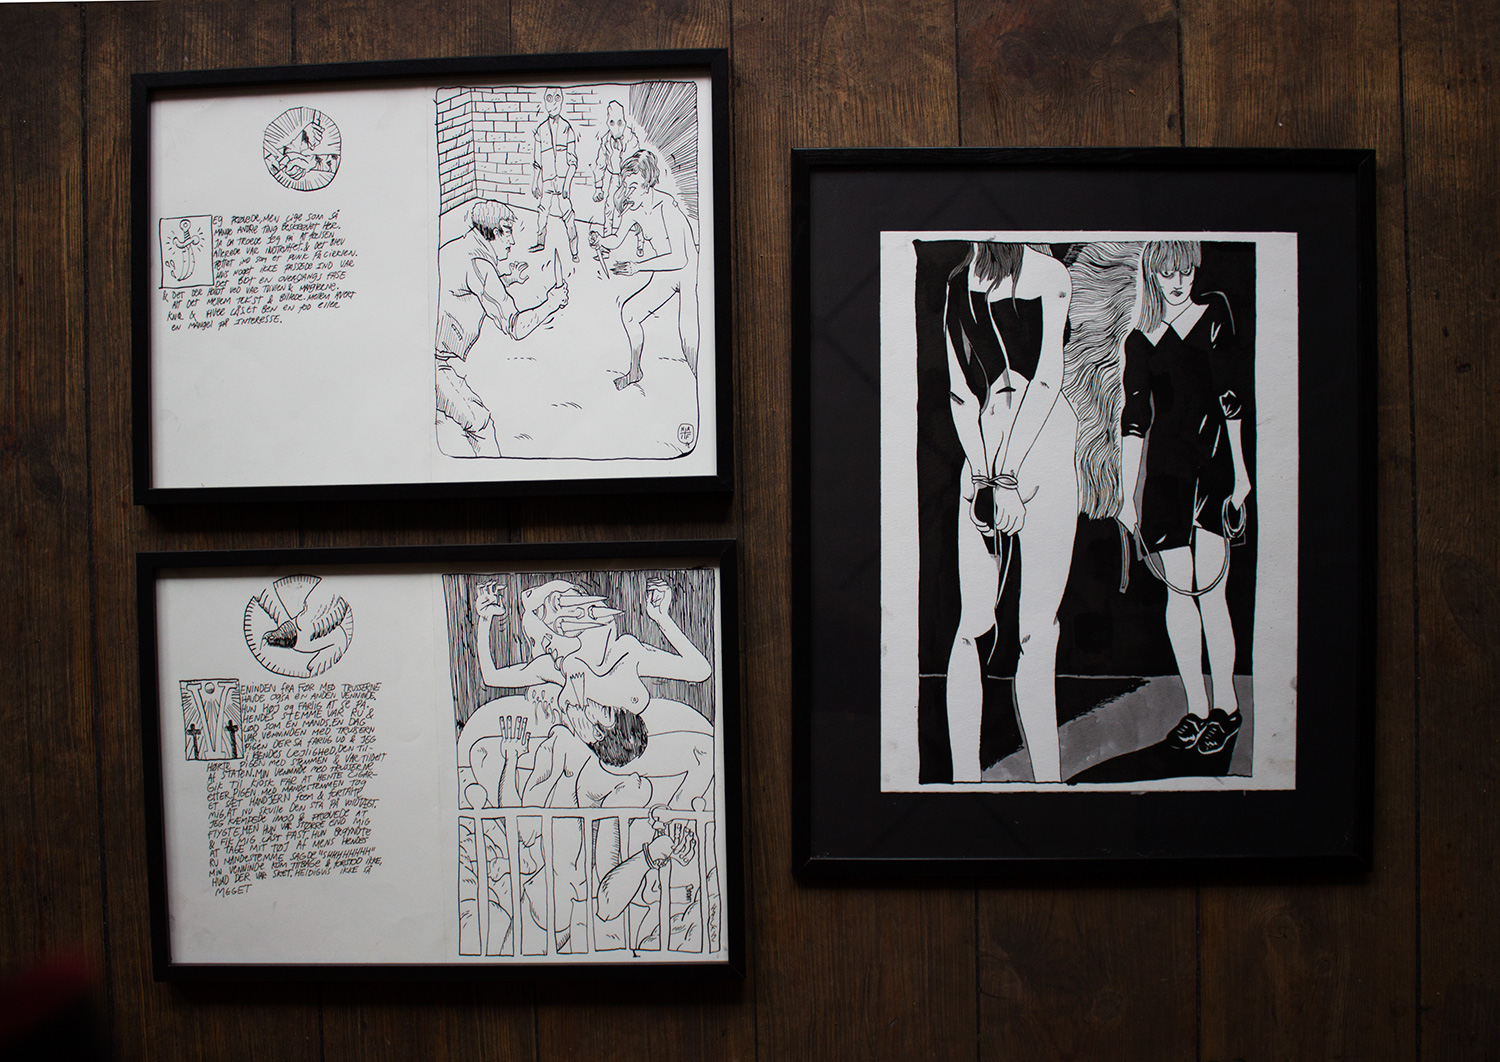 drawings, graphical, illustrative, monochrome, portraiture, bodies, cartoons, everyday life, sexuality, black, white, artliner, paper, marker, erotic, nude, sketch, Buy original high quality art. Paintings, drawings, limited edition prints & posters by talented artists.